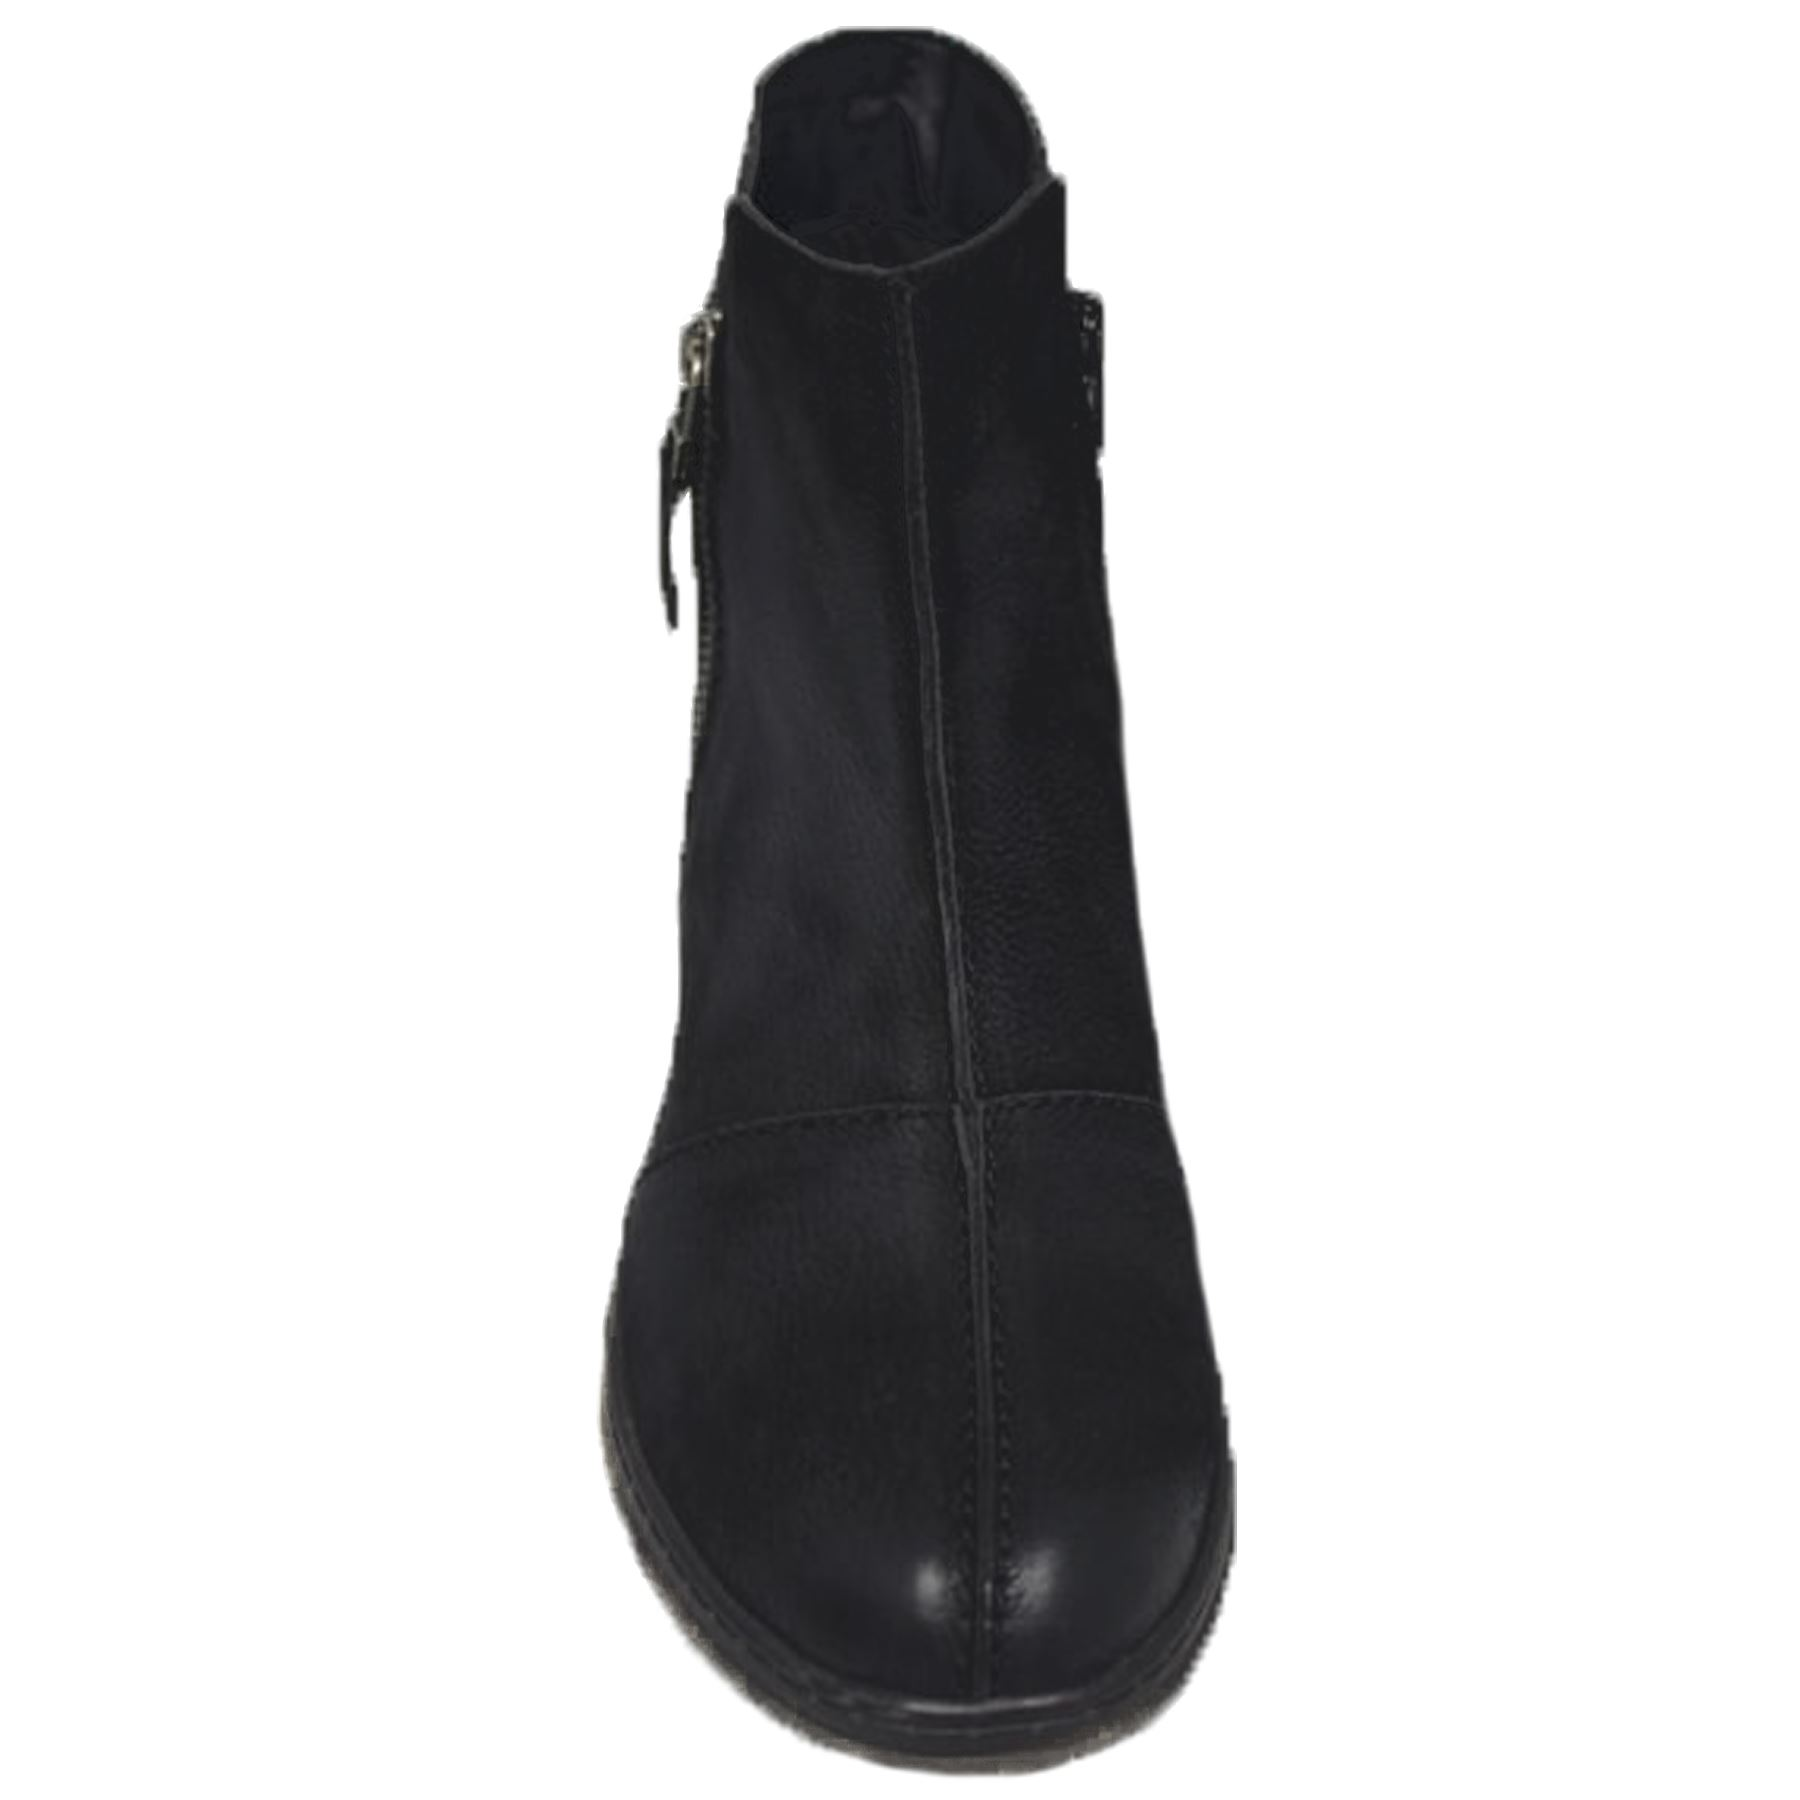 GLH496 Marcella Comfortable Side Zipper Warm Winter Leather Flat Ankle Boots